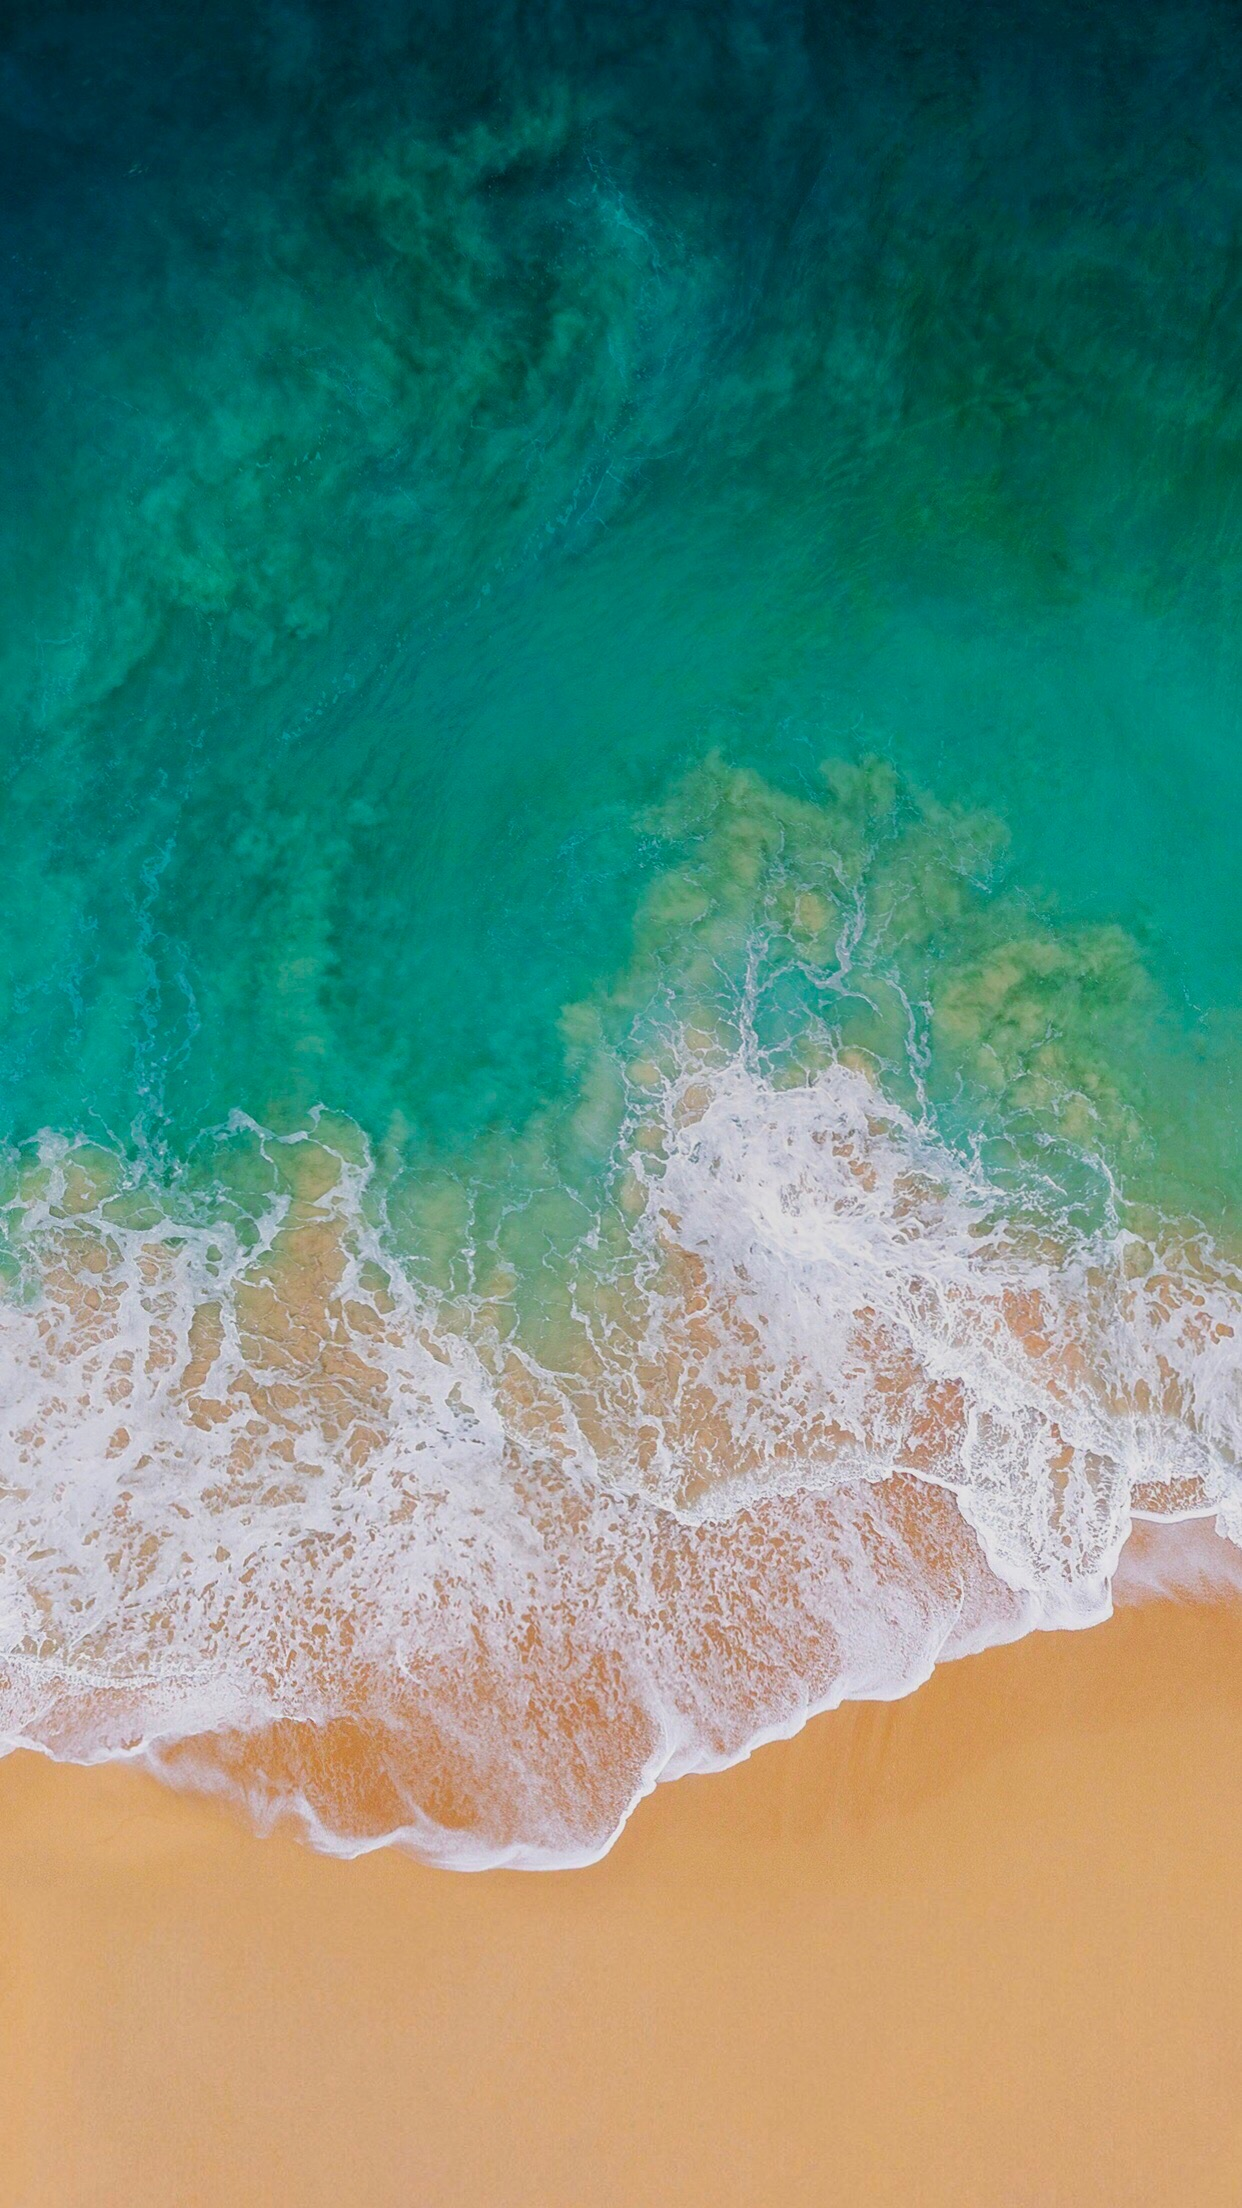 Download And Install The Ios 11 Wallpaper For Iphone Ipad And Mac